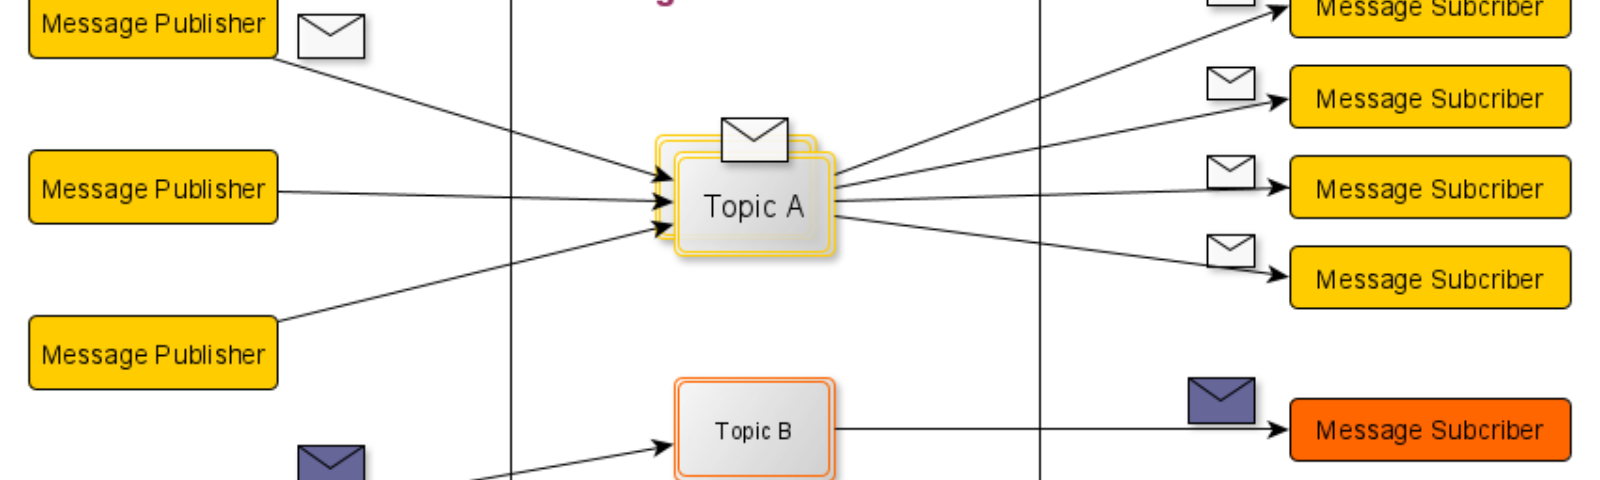 Publish/Subscribe messaging model